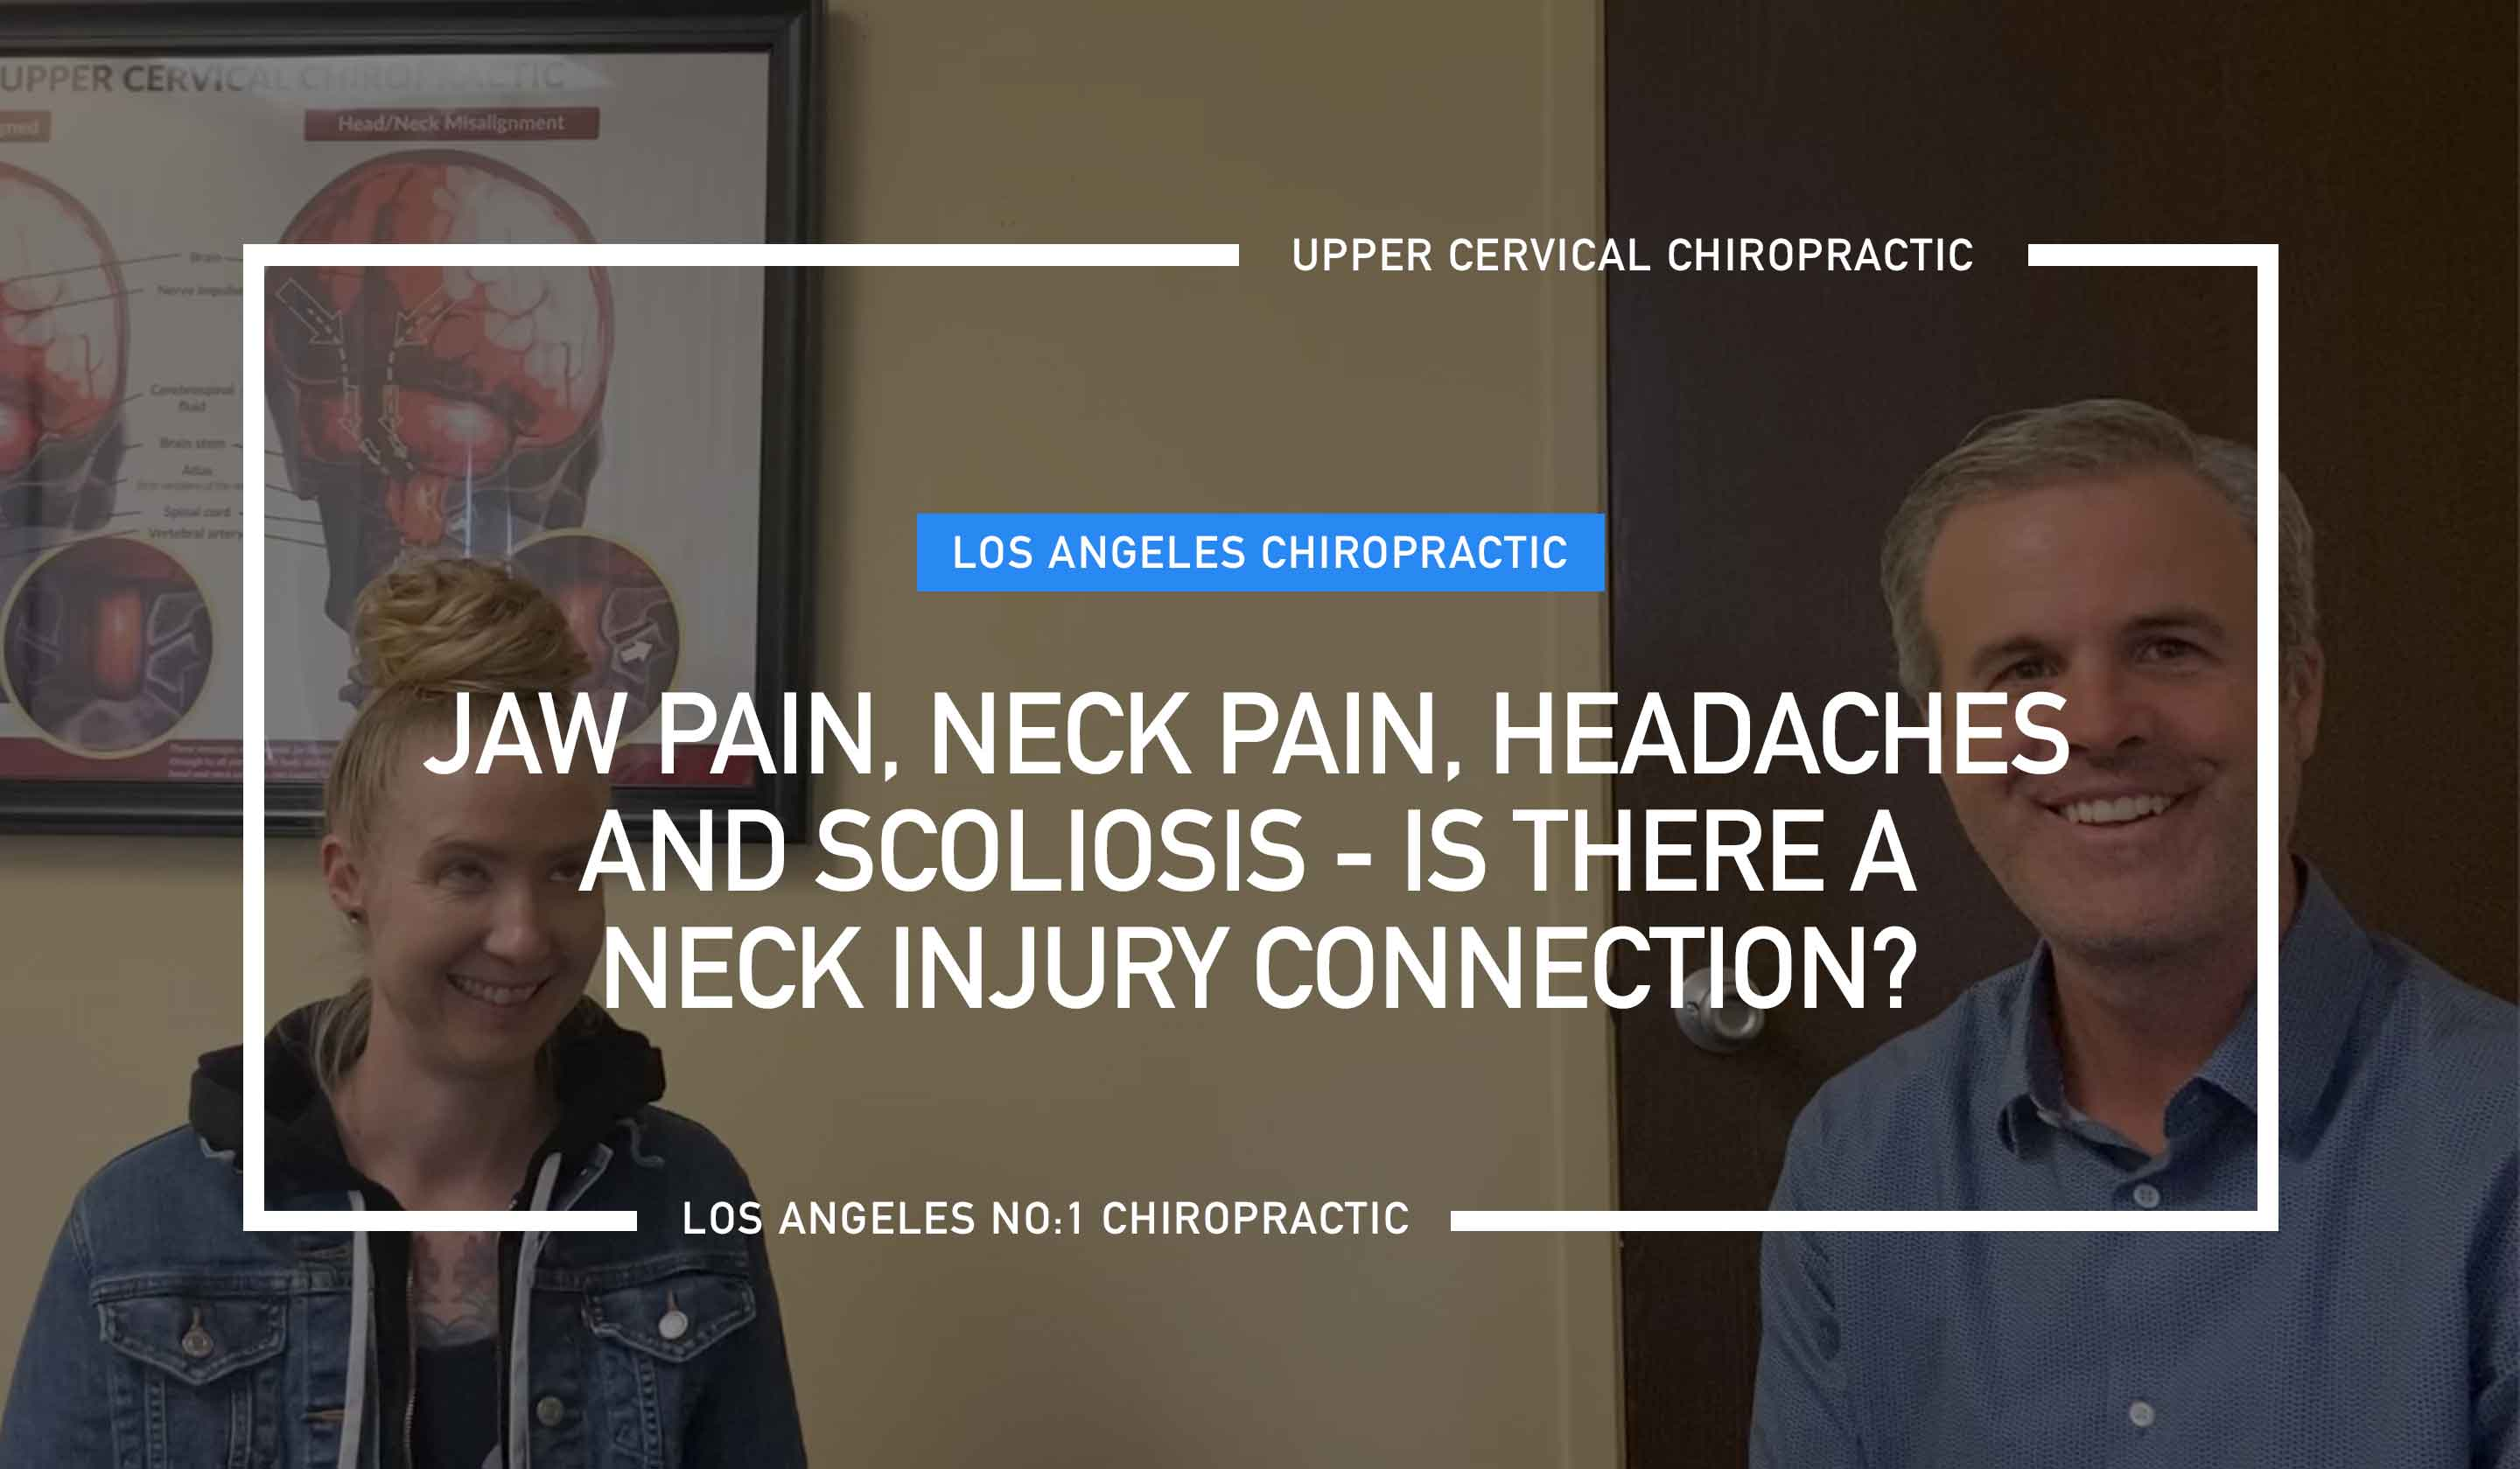 Jaw pain, neck pain, headaches and scoliosis